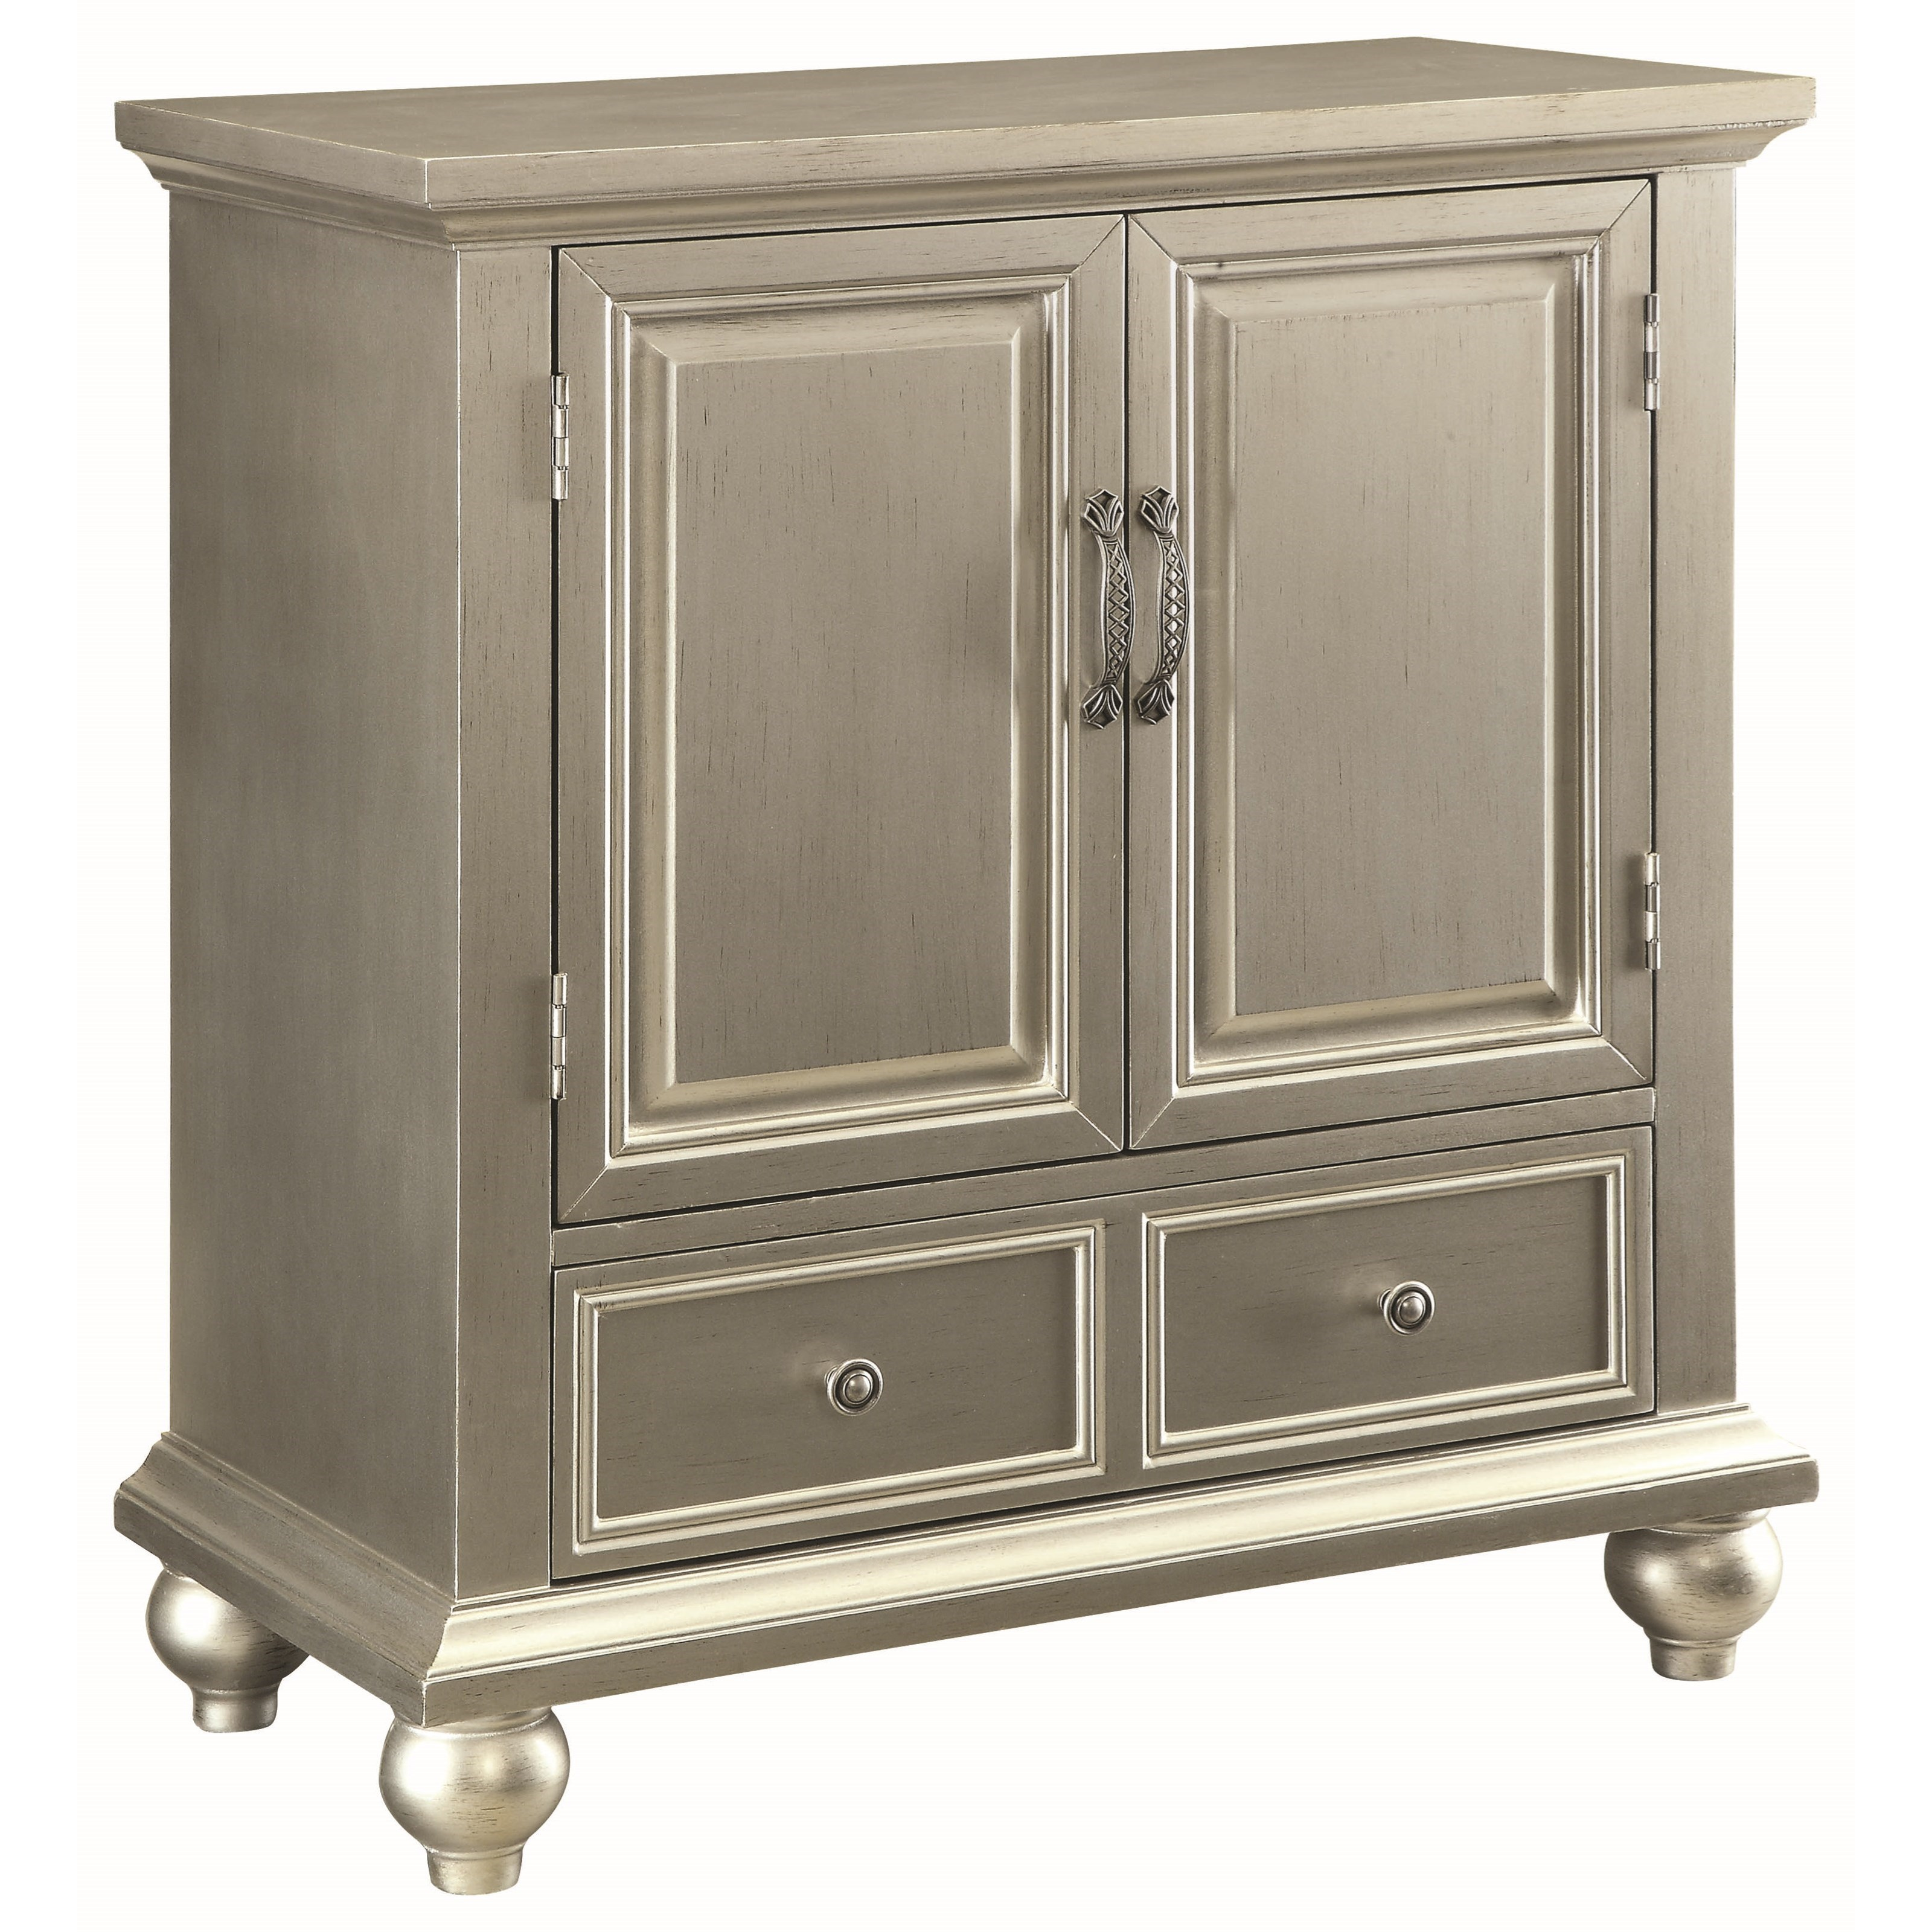 Coaster Accent Cabinets Accent Cabinet - Item Number: 950632